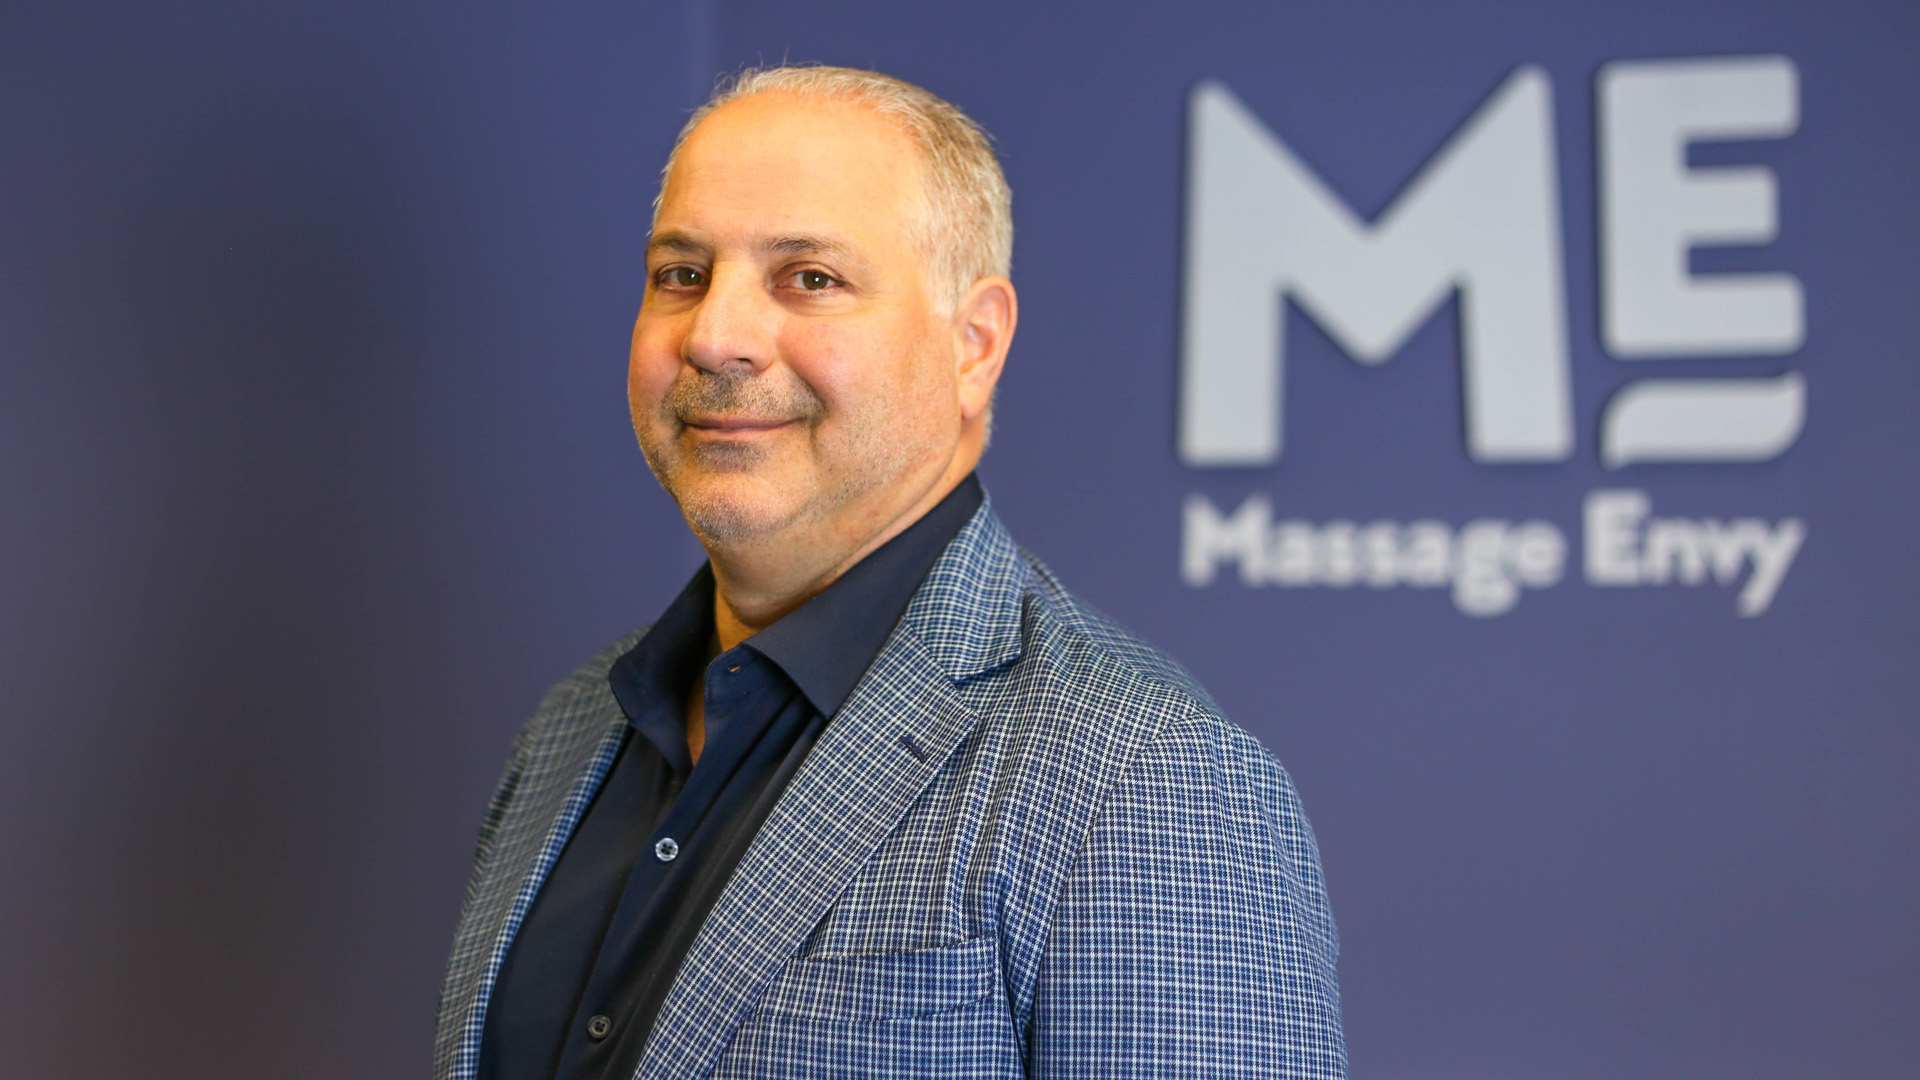 Massage Envy CEO Joe Magnacca appears in an undated photo provided by the company to KTLA.